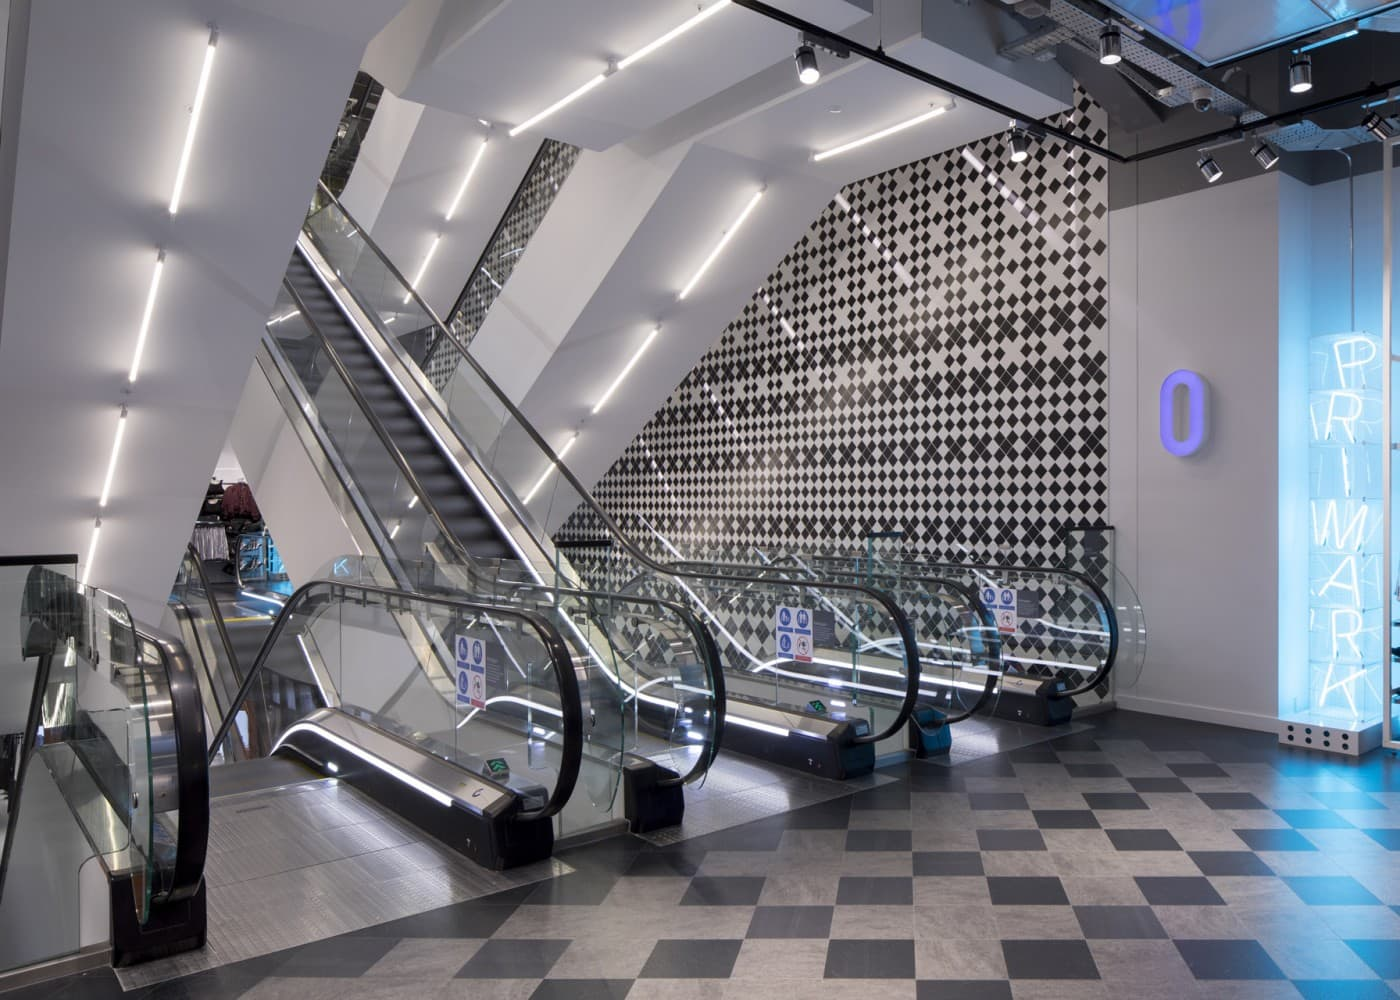 retail lighting design: Primark Amsterdam escalators